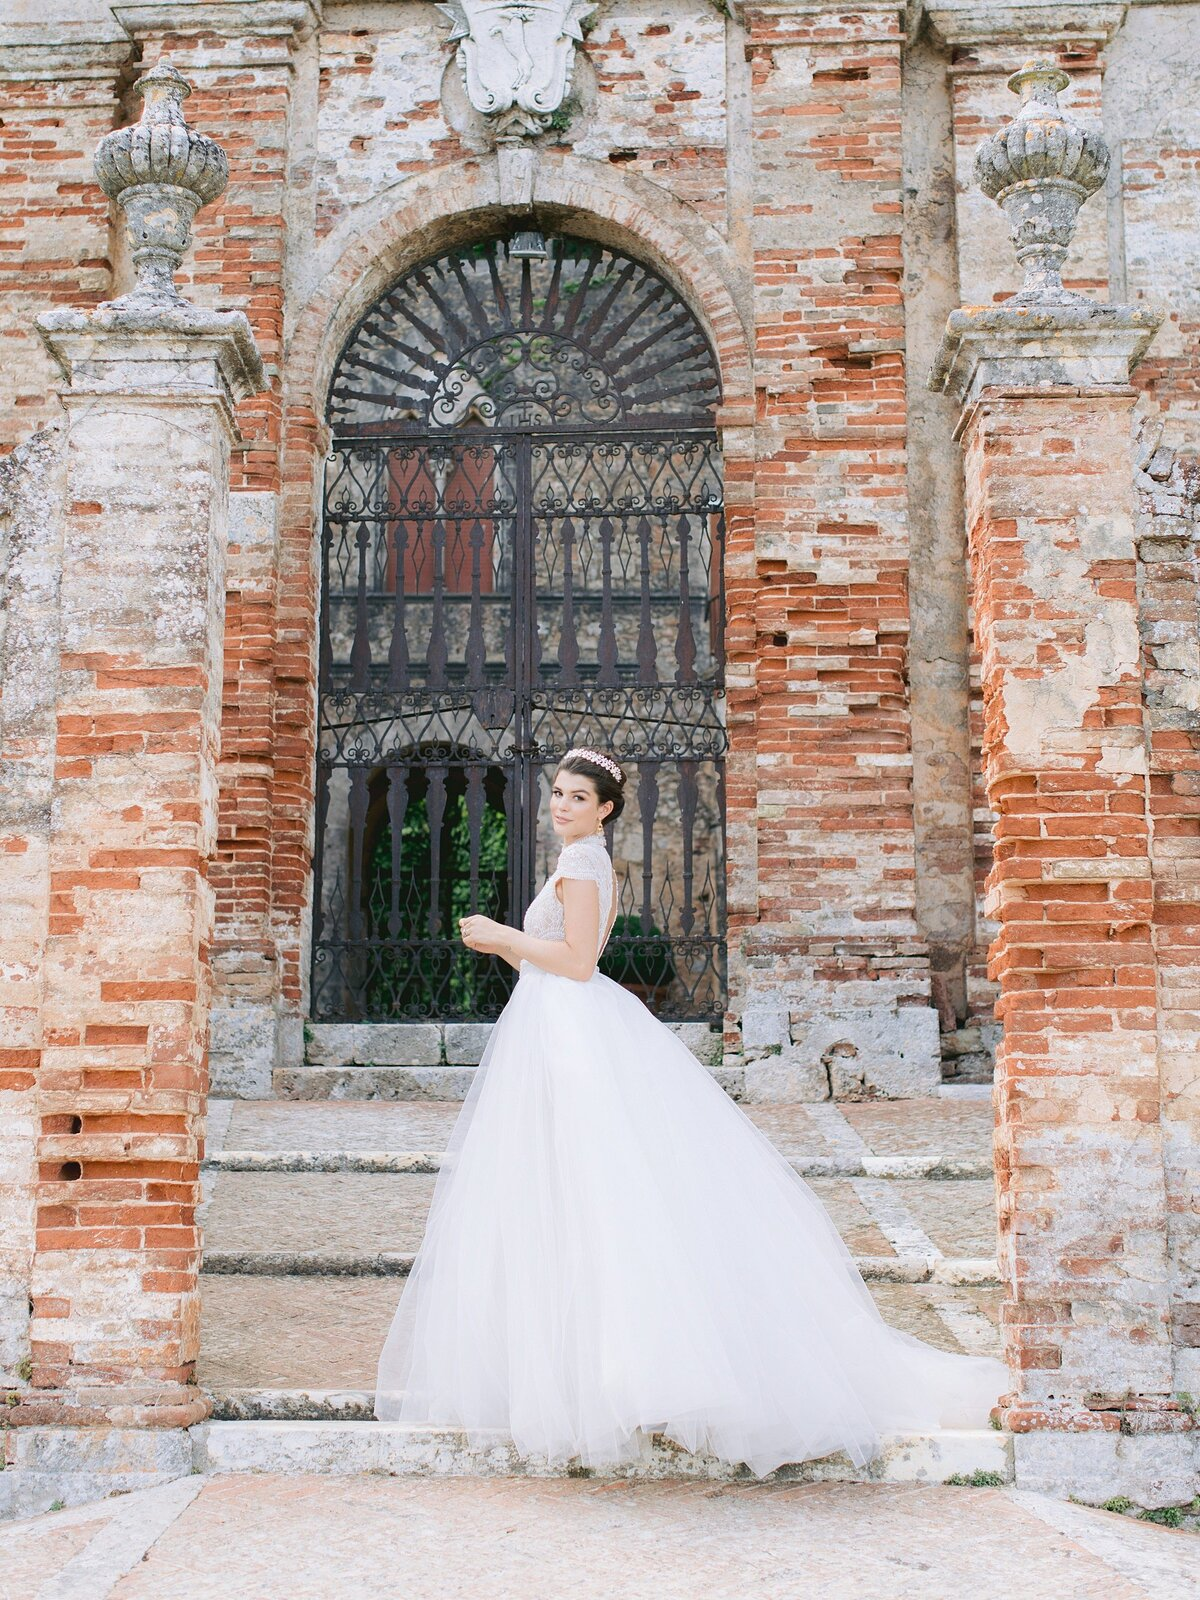 NKT-Events_Wedding-Inspiration-Editorial_Castello-di-Celsa_0018